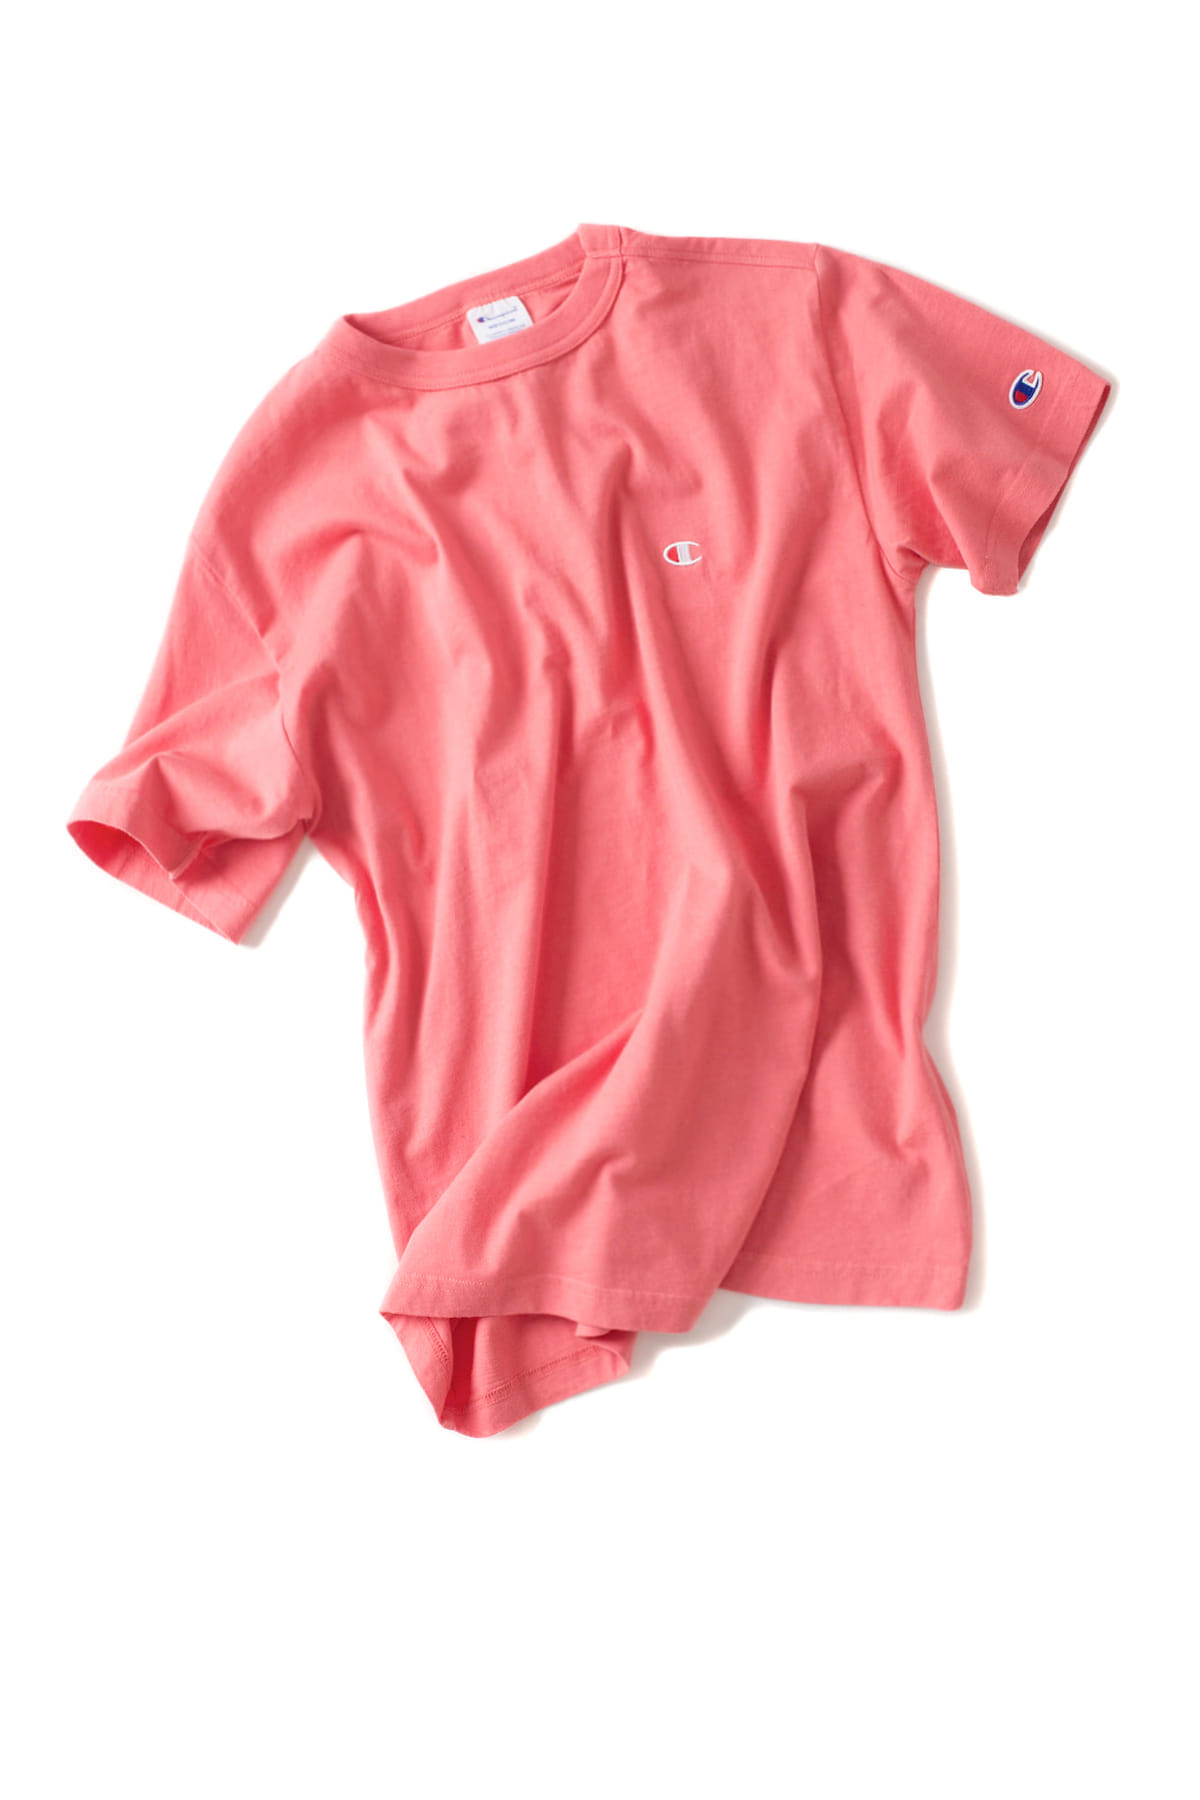 Champion : Basic T-Shirt (Pink)